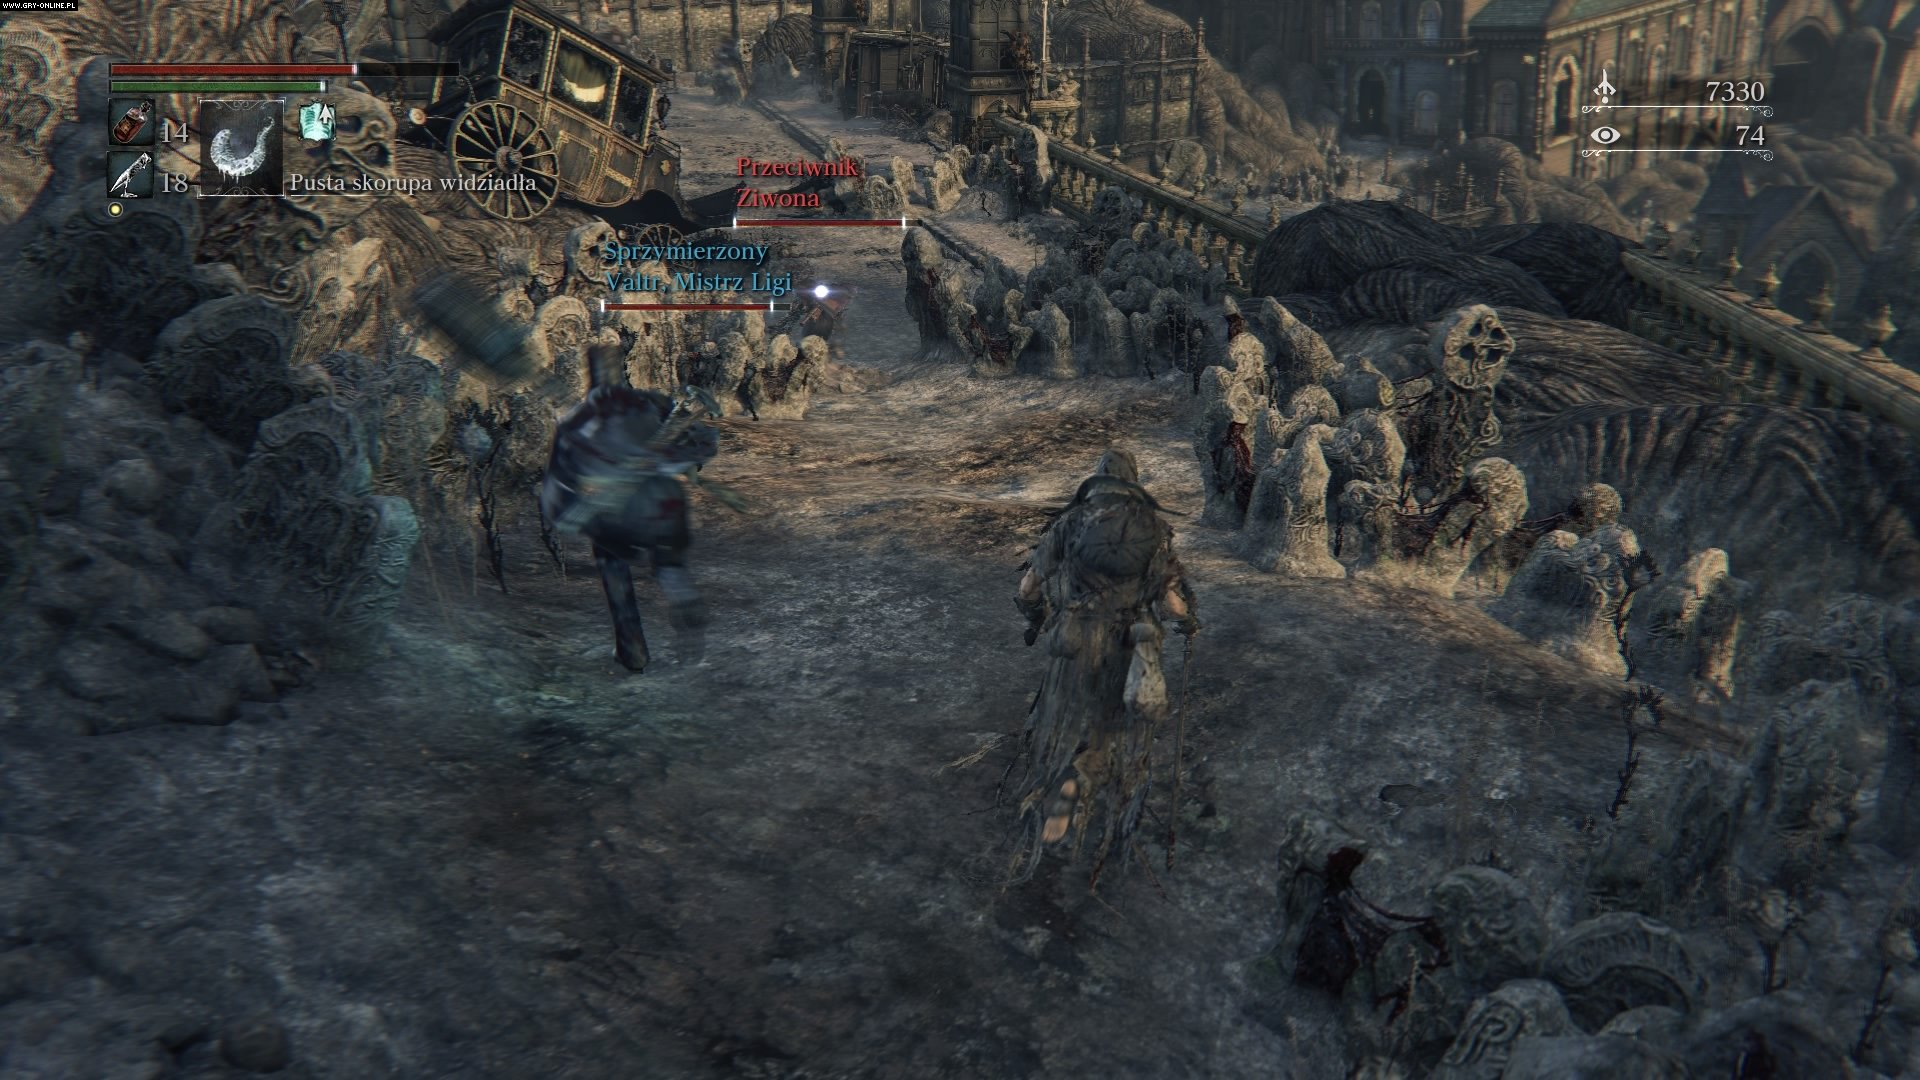 Bloodborne: The Old Hunters PS4 Gry Screen 5/50, FromSoftware, Sony Interactive Entertainment